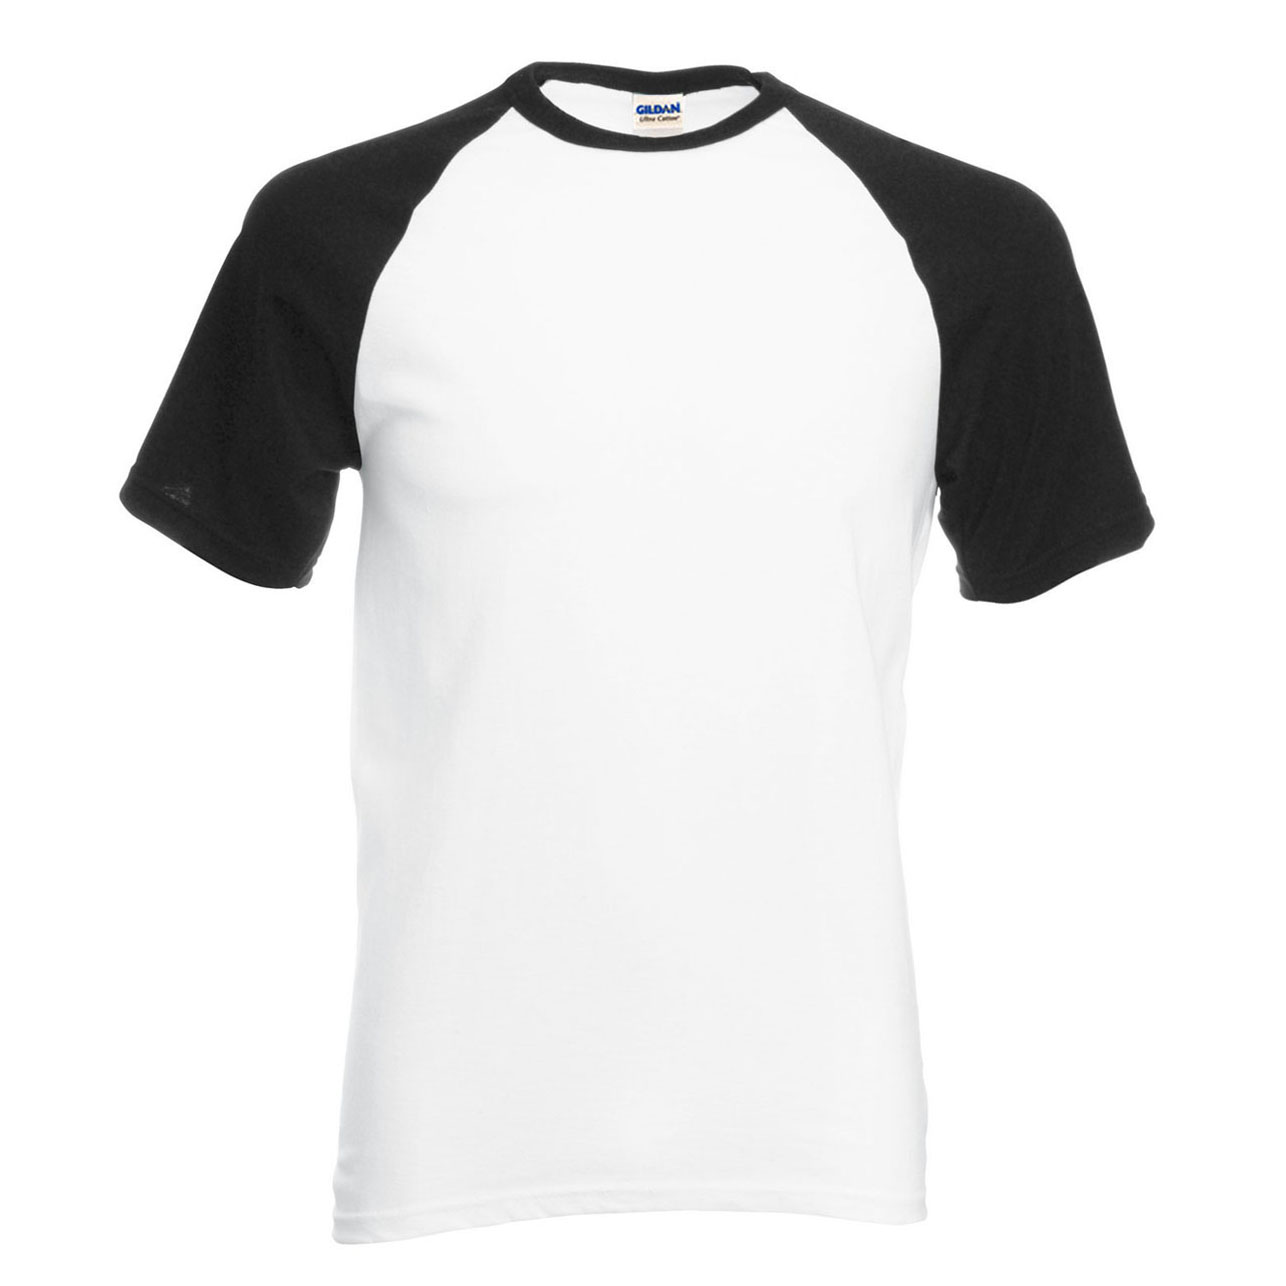 Solid Color T Shirts Men 2019 Hot Summer Cotton High Quality Raglan T-shirt Fashion Hip Hop Top Tees Simple Style Blank Shirt